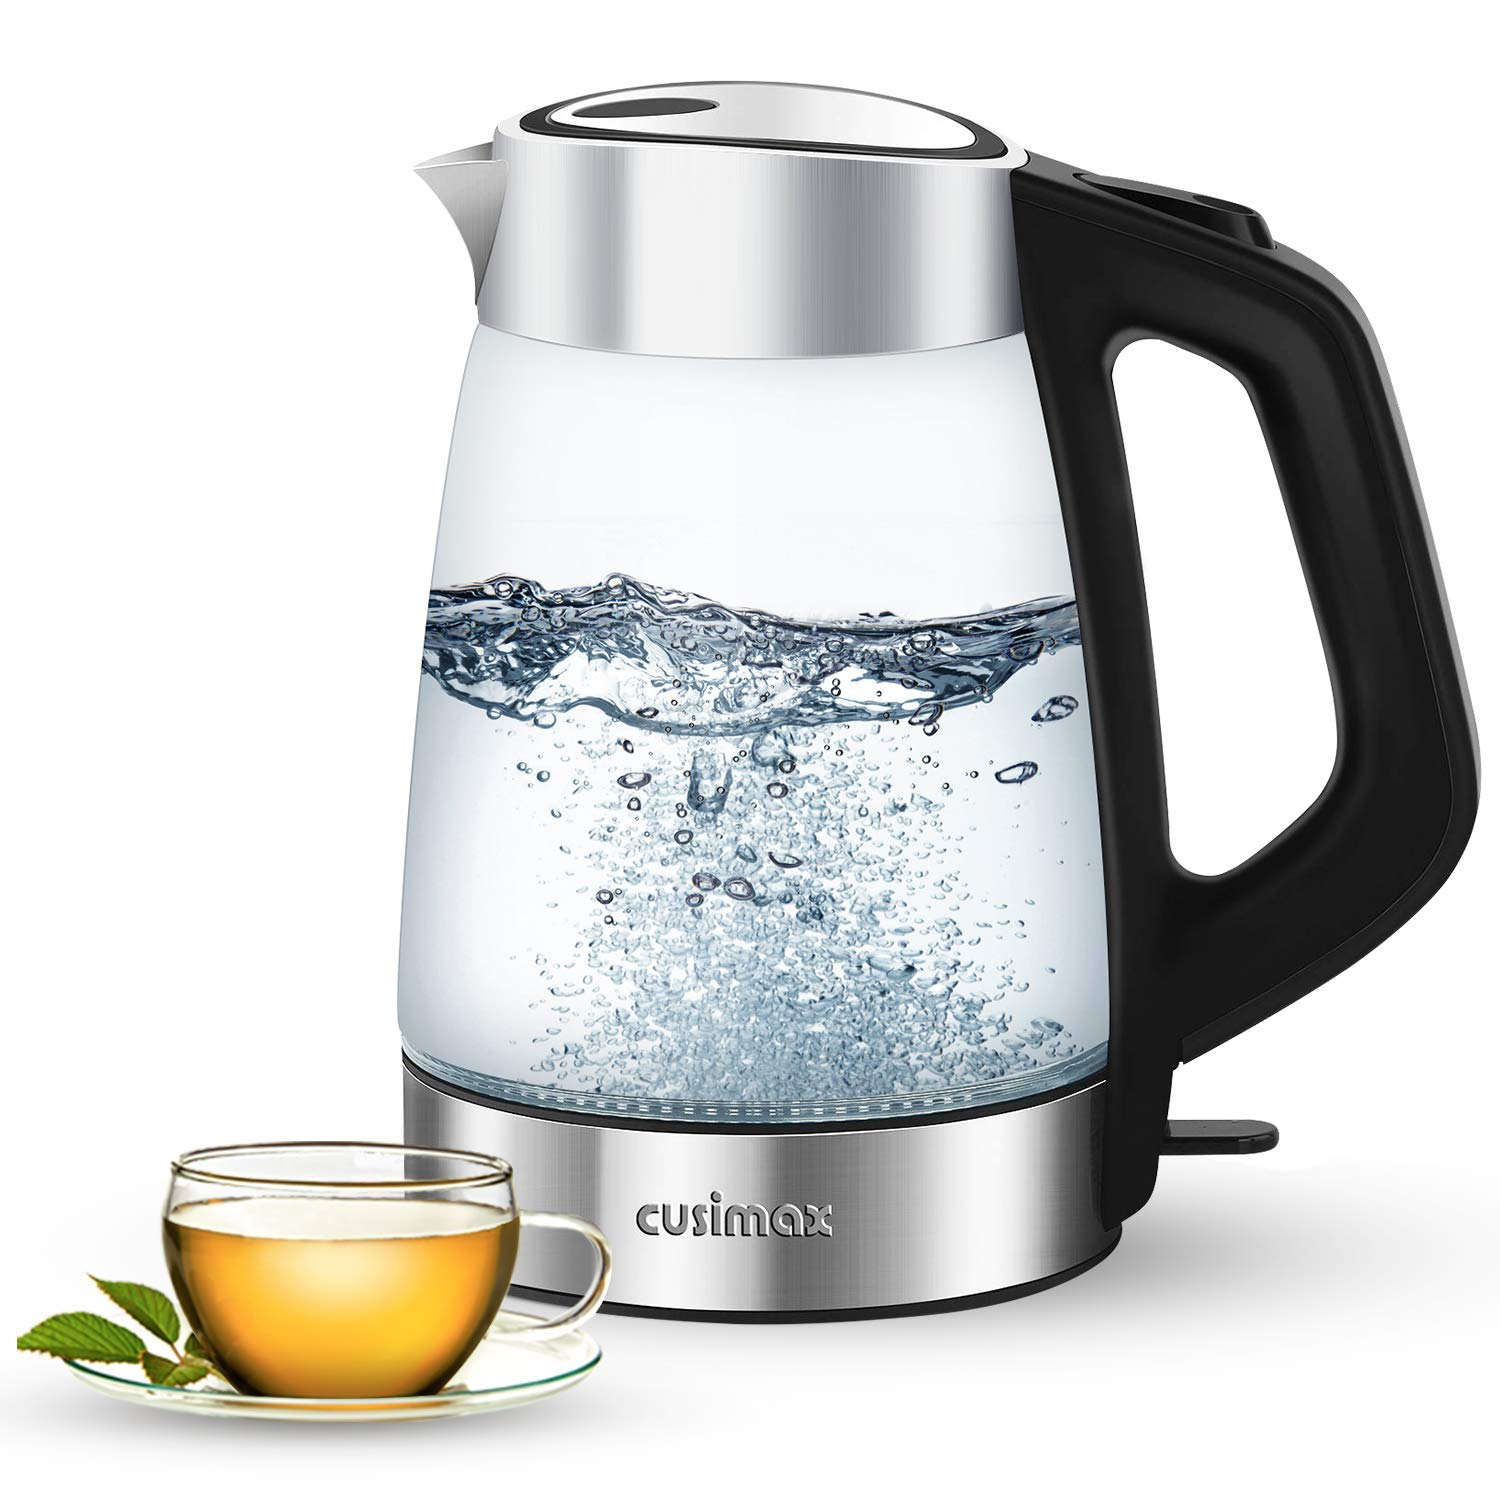 Cusimax Electric Kettle 1.7L BPA-free Glass Hot Water Kettle with 100 Stainless Steel Lid Bottom, Cordless Water Boiler Heater for Tea coffee, Auto Shut-Off Boil-Dry Protection LED Indicator Light